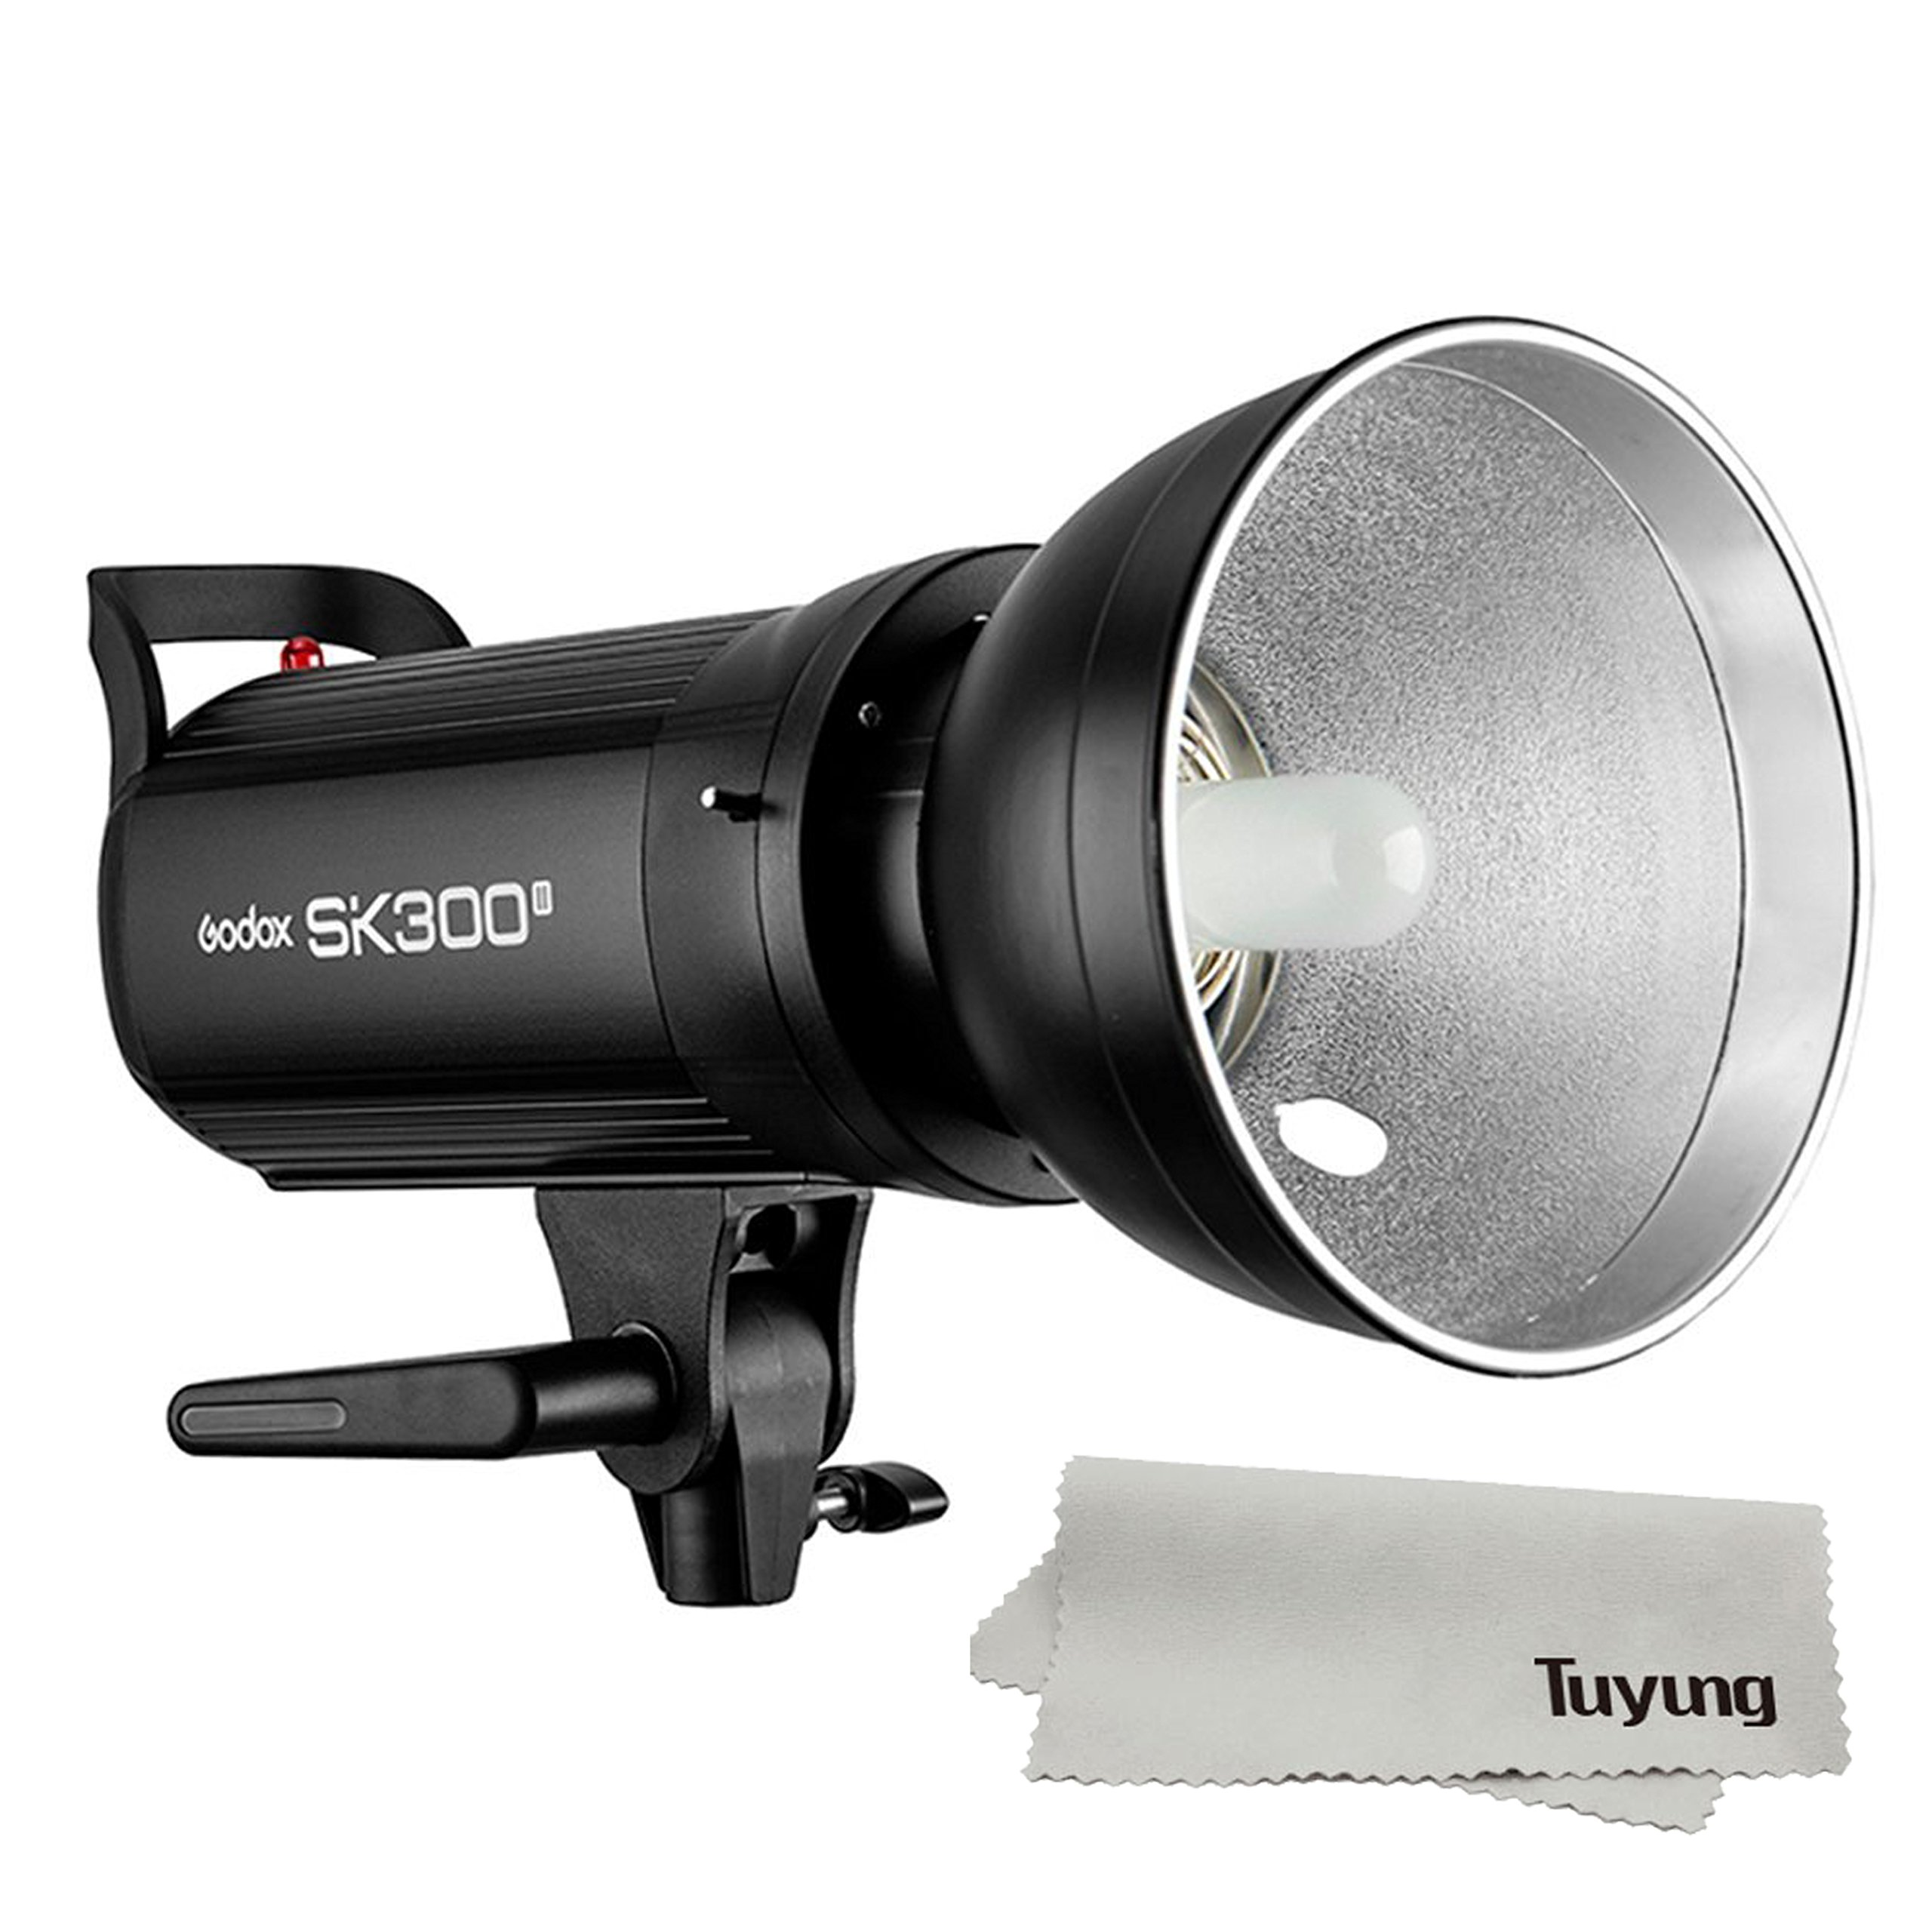 Godox SK300II 300 Monolight with Built-in Godox 2.4G Wireless X System Bowens Mount Strobe Flash for Photography Lighting Portrait Photography